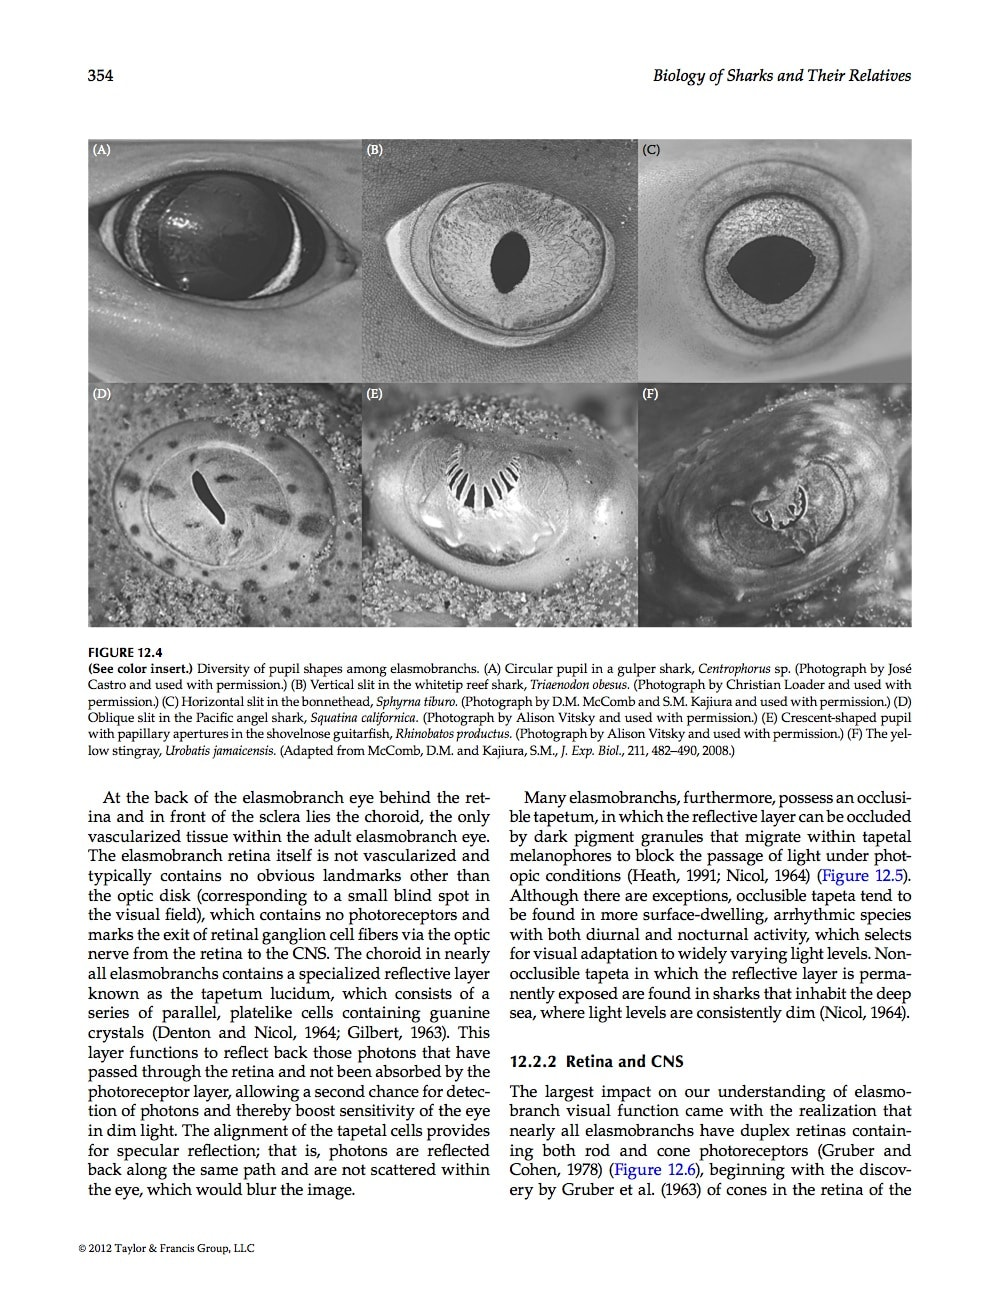 research papers the eye Research paper intrascleral drug delivery to the eye using hollow microneedles jason jiang, 1 jason s moore, 1 henry f edelhauser, 2 and mark r prausnitz 1,3.